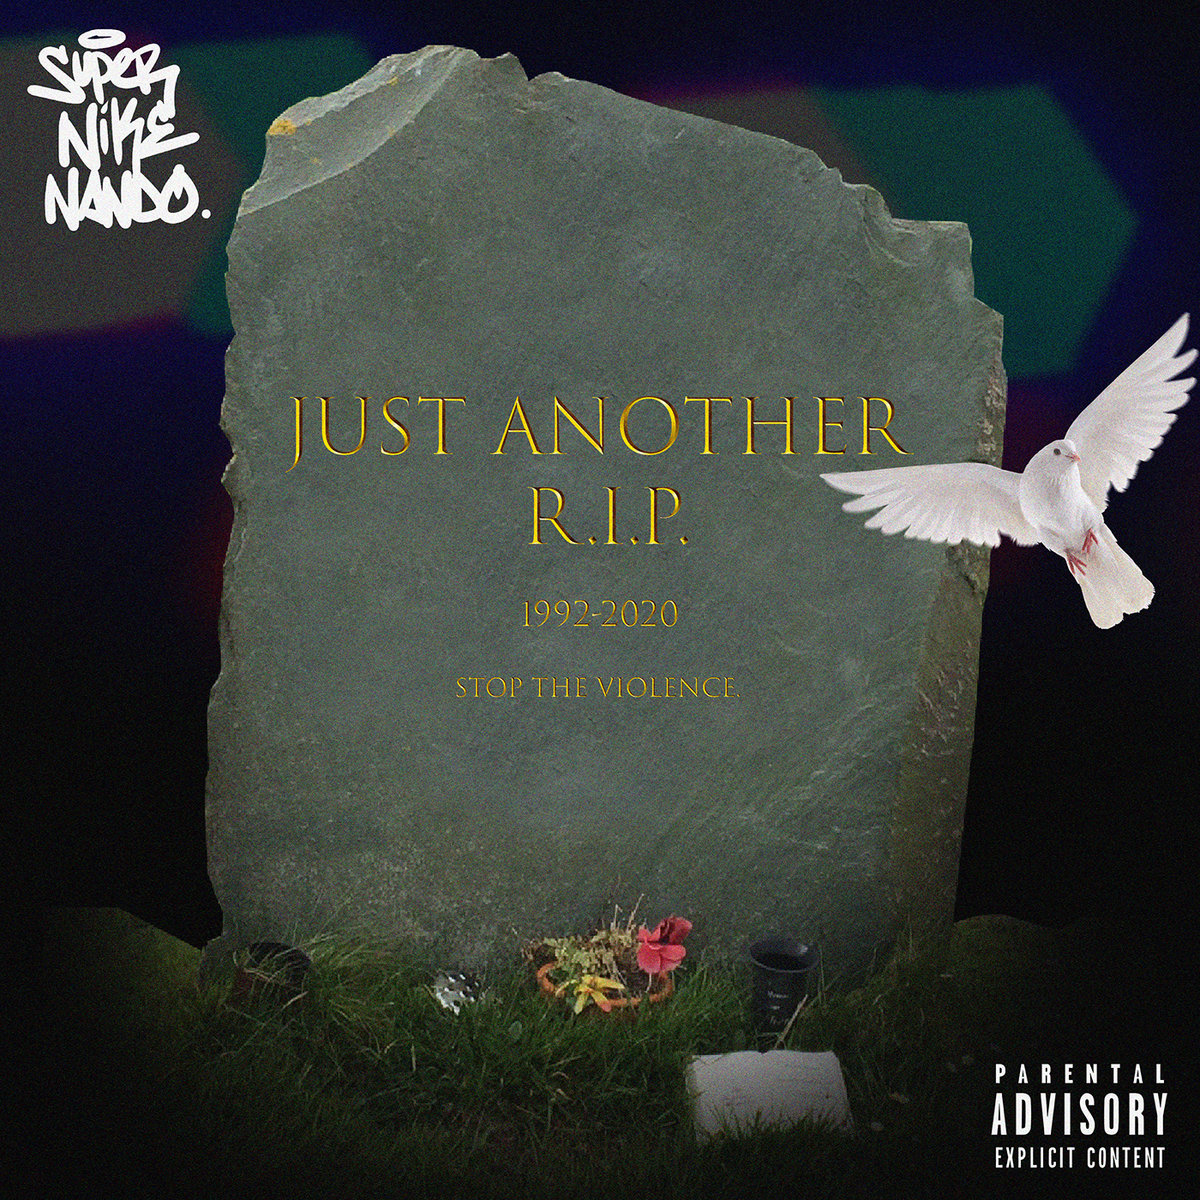 """Super Nike Nando – """"Just Another R.I.P."""""""